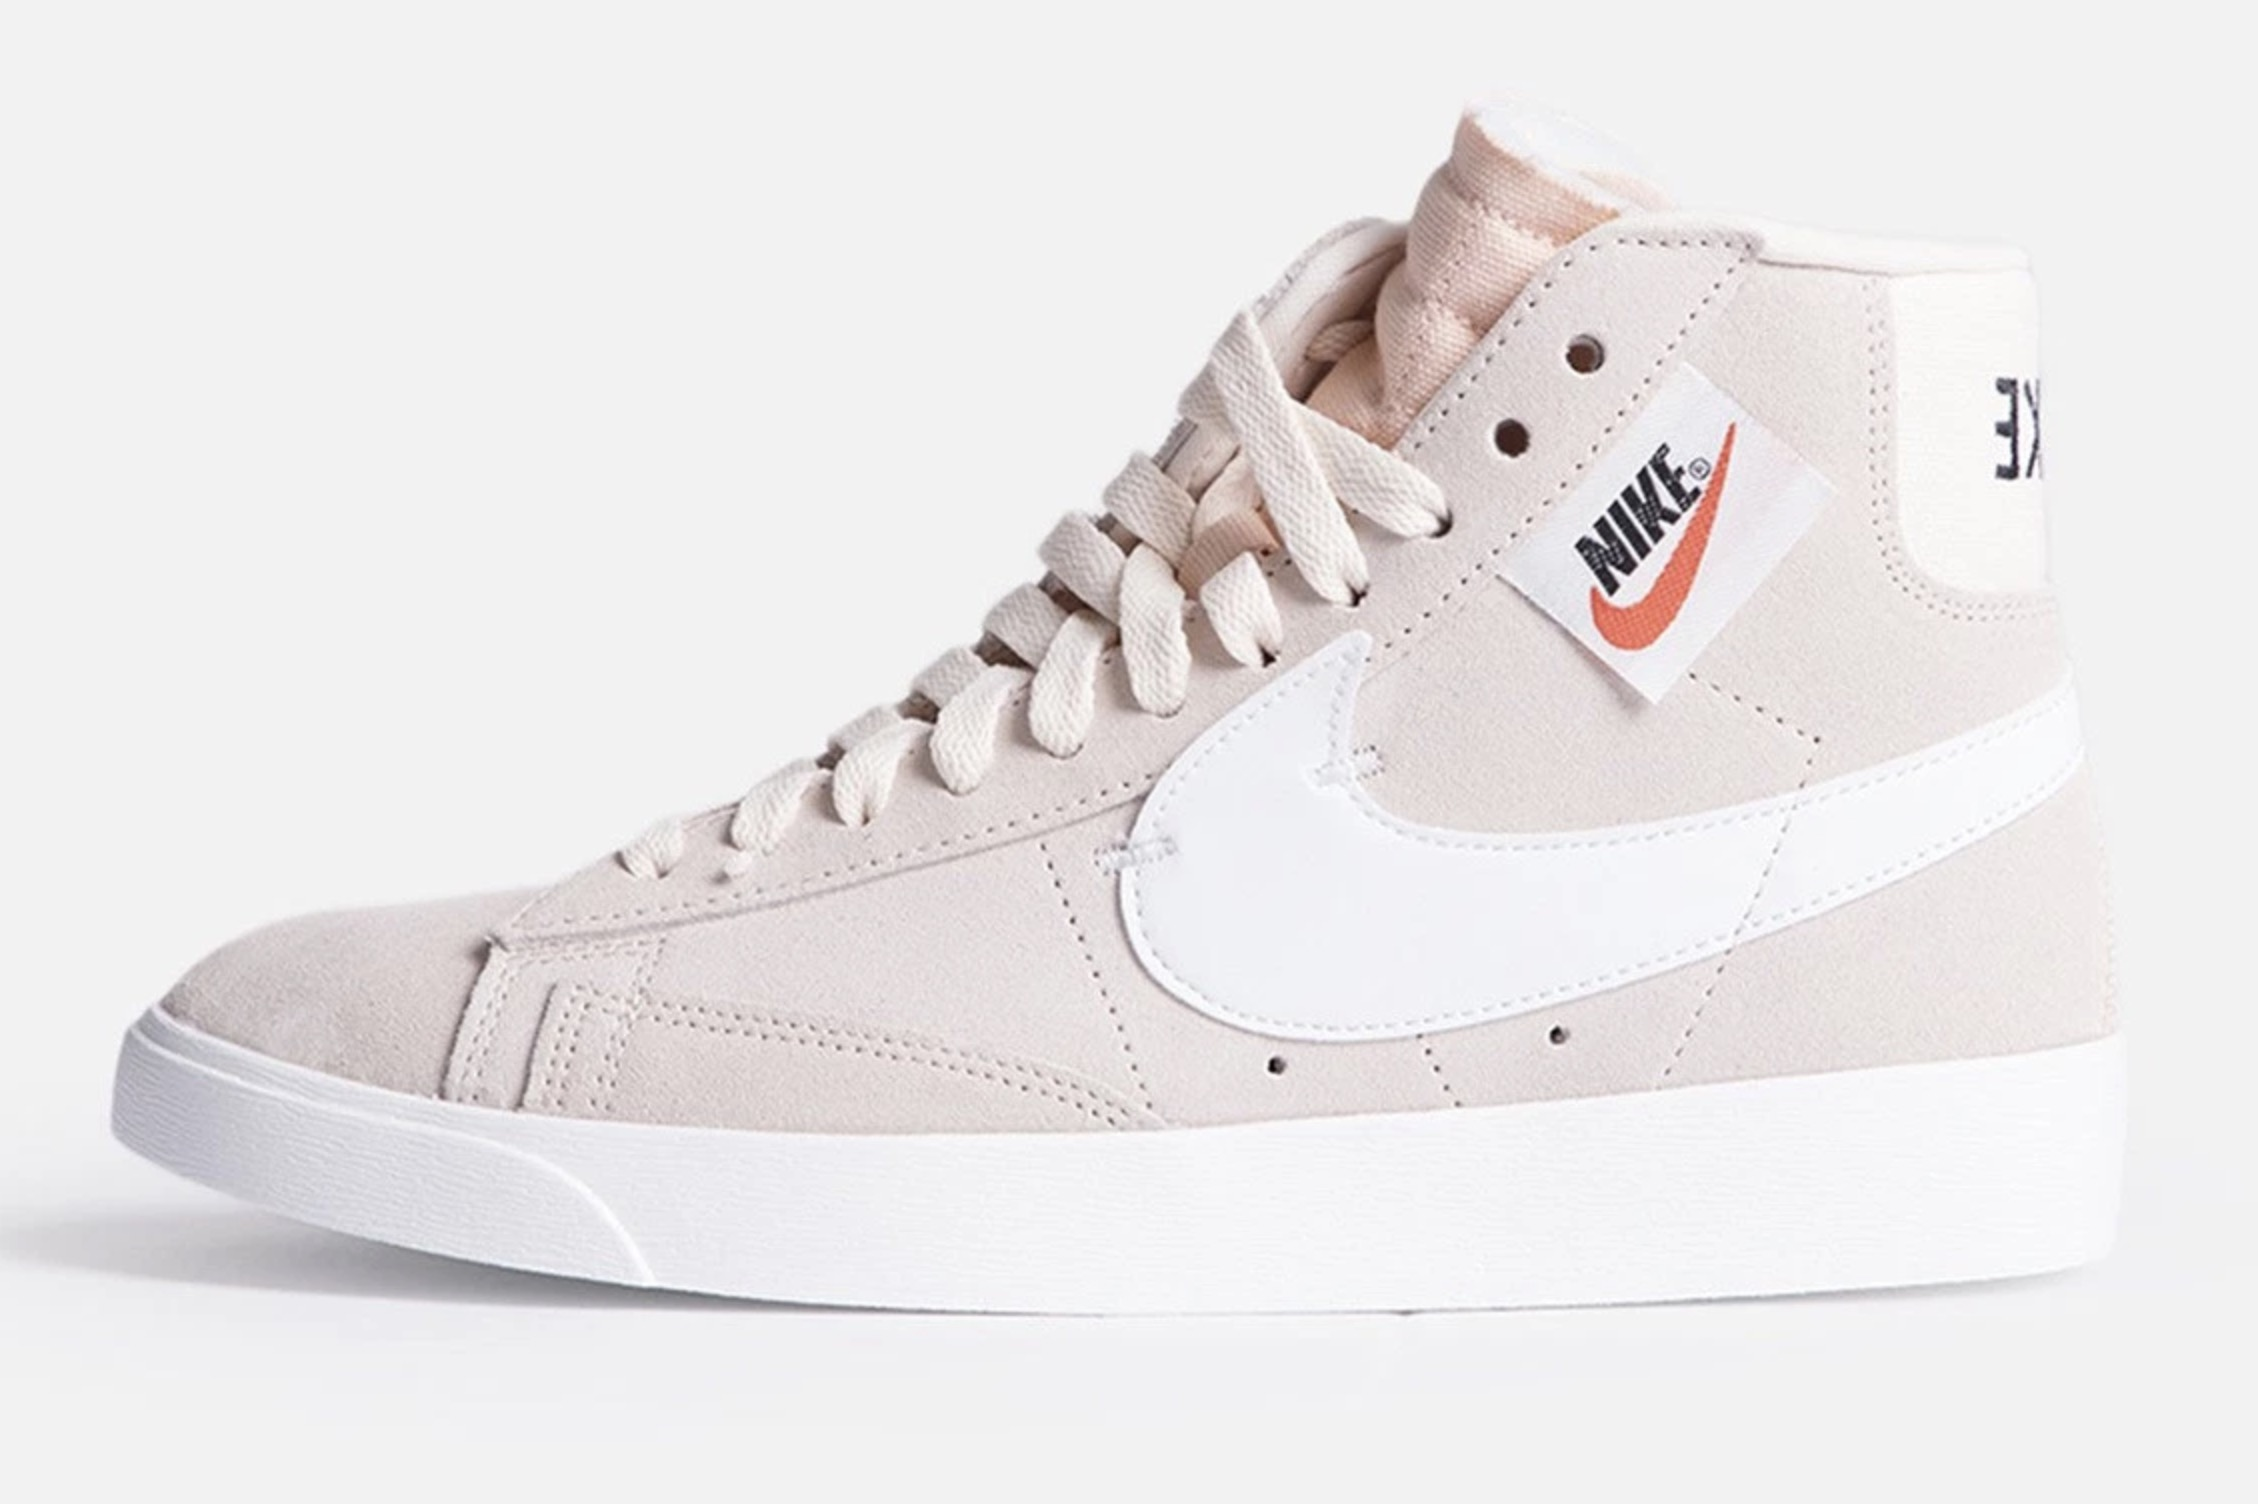 1e32d28155 Three New Colourways Hit The Nike Blazer Mid Rebel | Closer Look ...